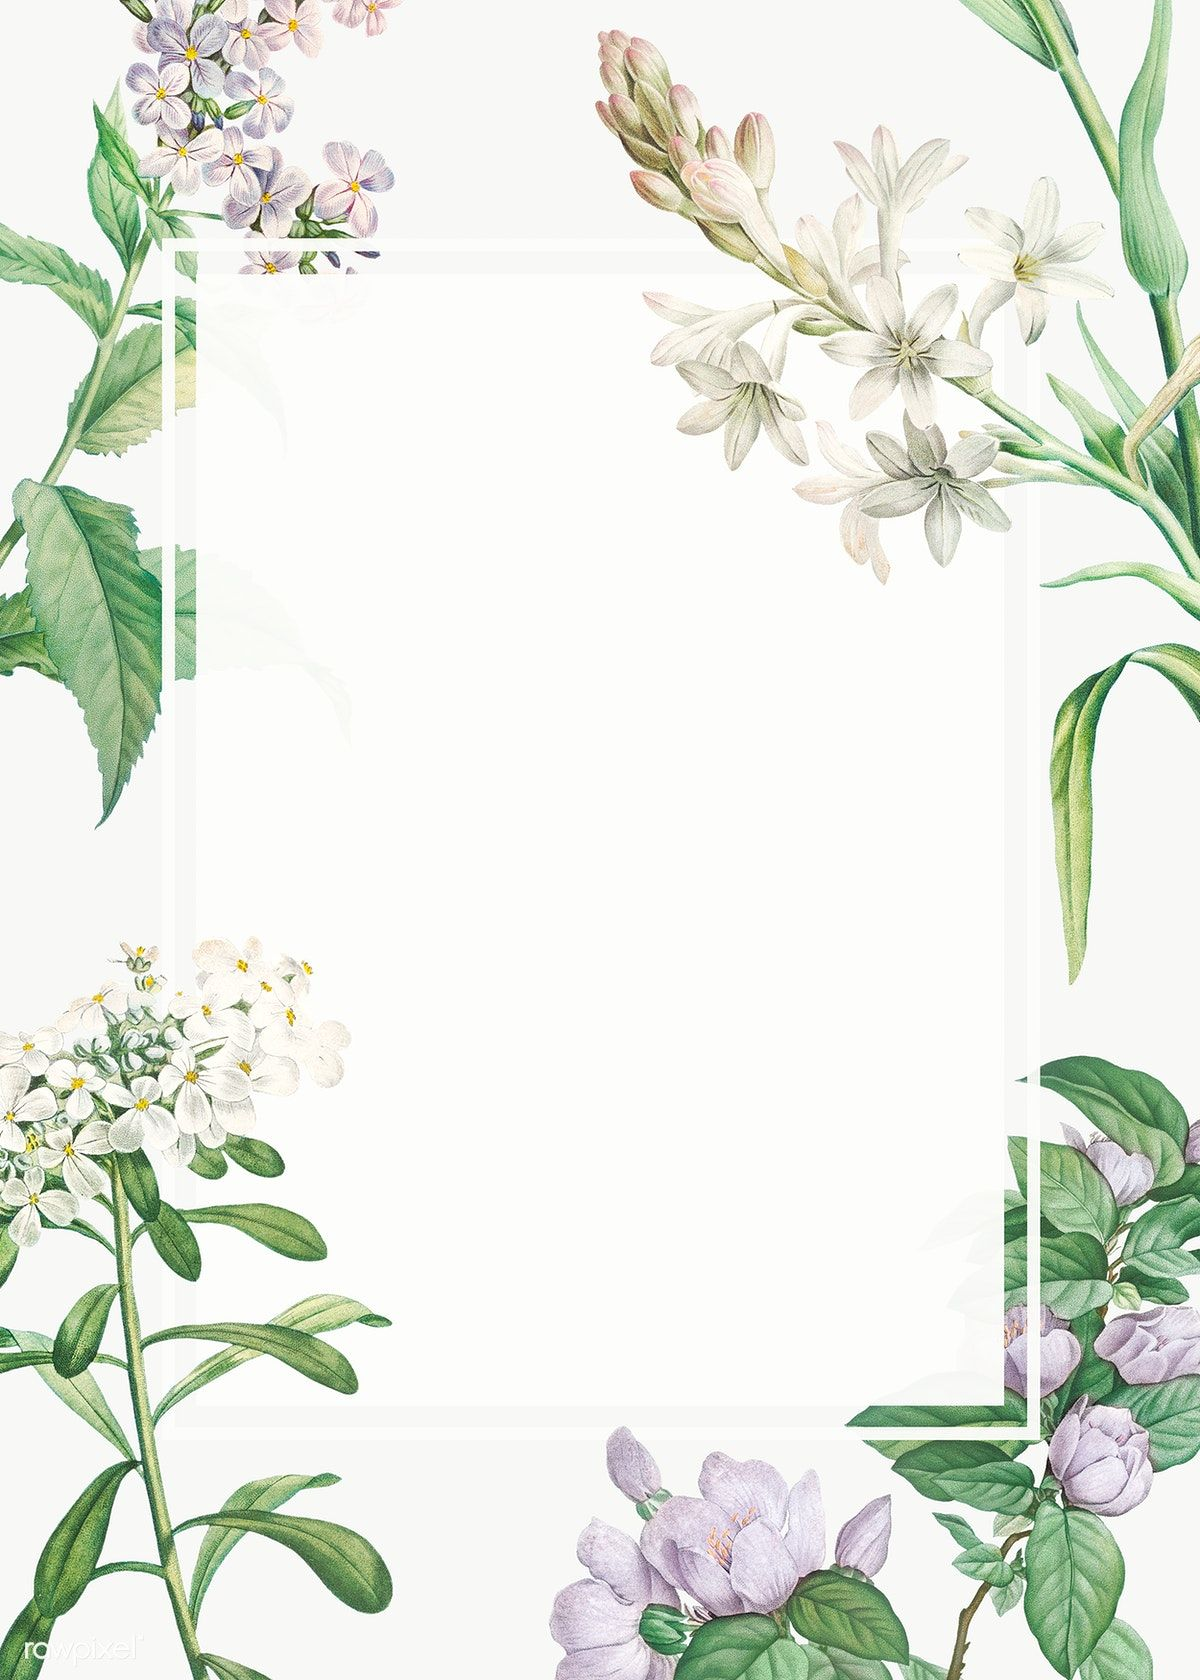 Vintage Blank Various Flowers Themed Frame Transparent Png Free Image By Rawpixel Com Photo Frame Wallpaper Gold Wallpaper Background Pink Background Images